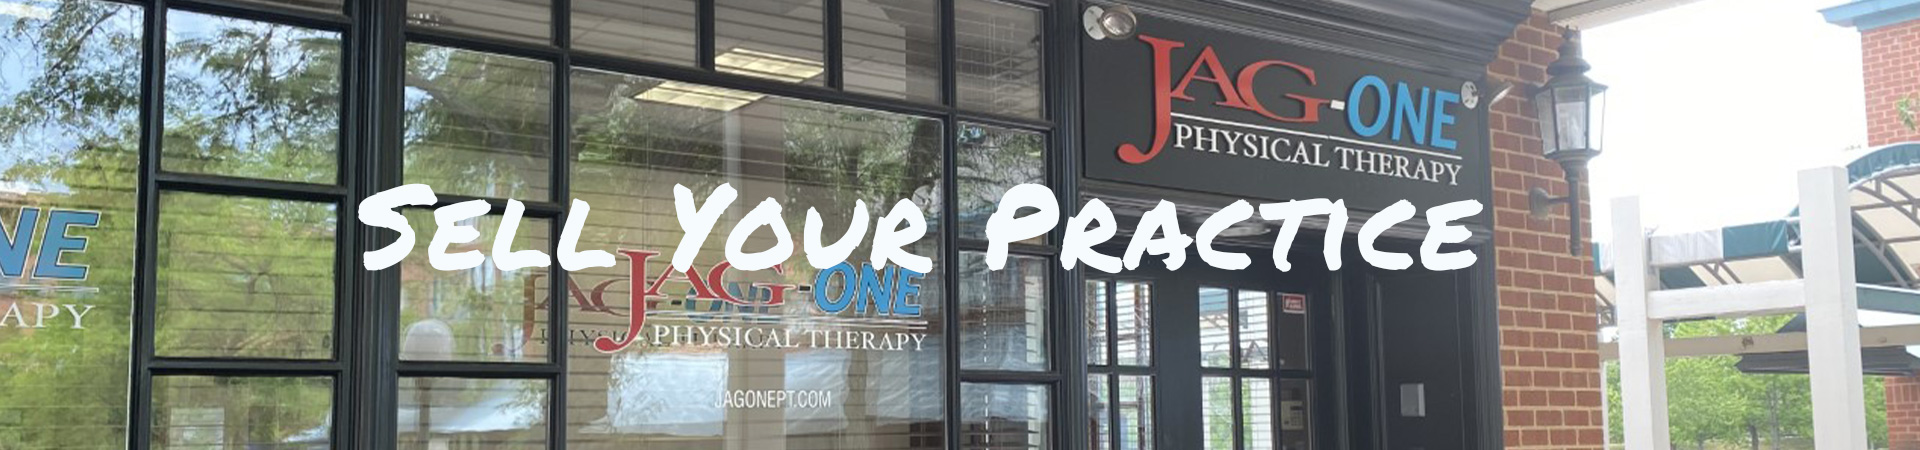 Sell Your Practice